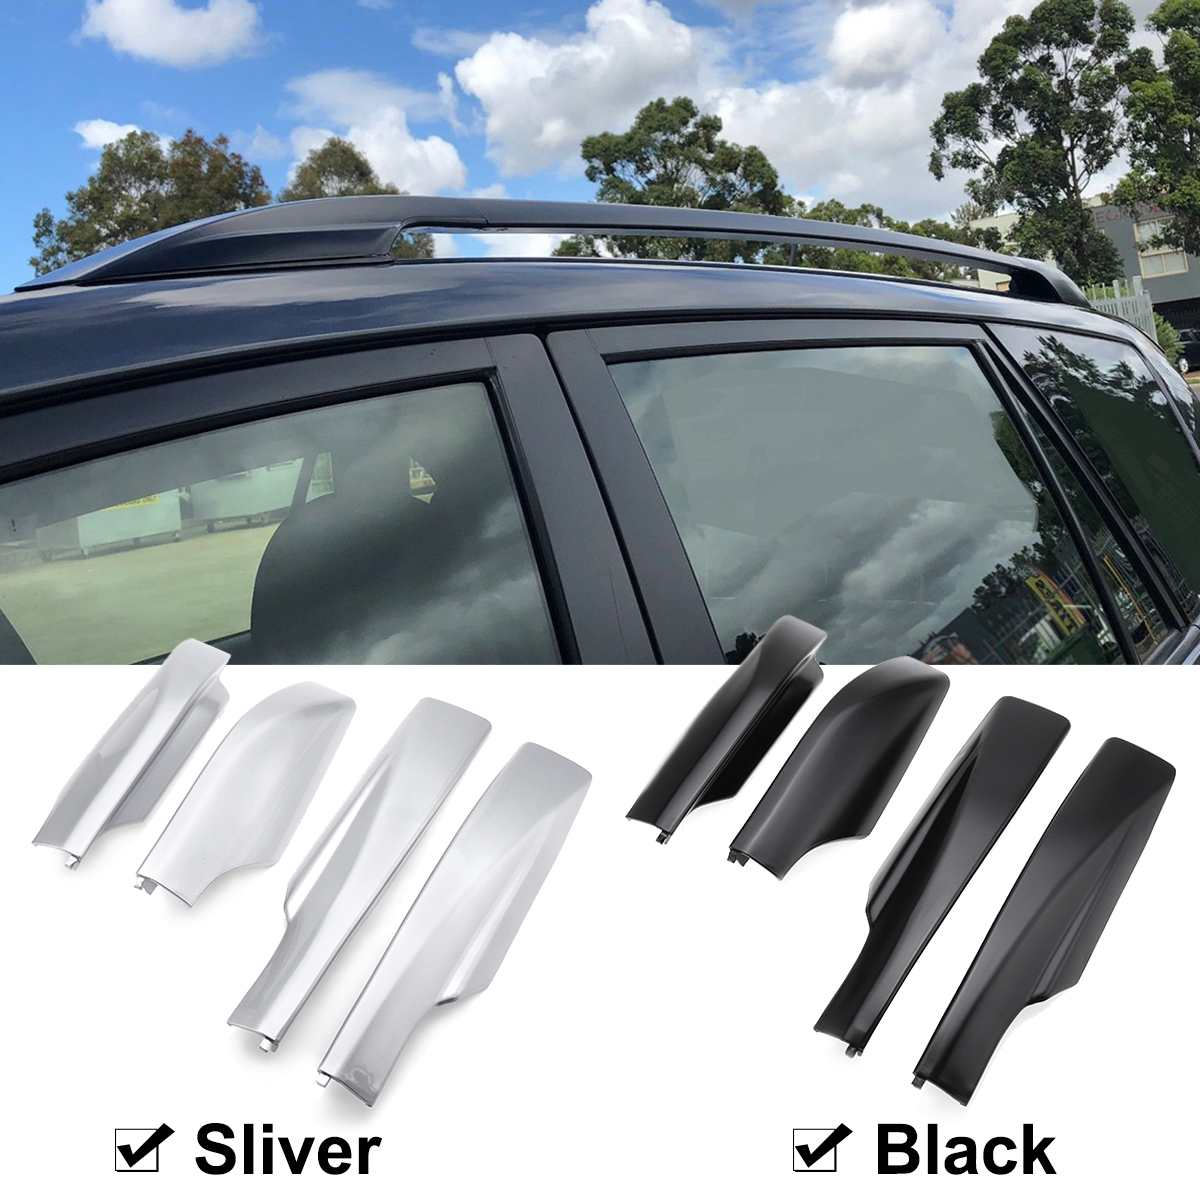 4Pcs Black Silver ABS Roof Rack Cover Rail End Protective Cover Shell For TOYOTA RAV4 2007 2008 2009 2010 2011 2012